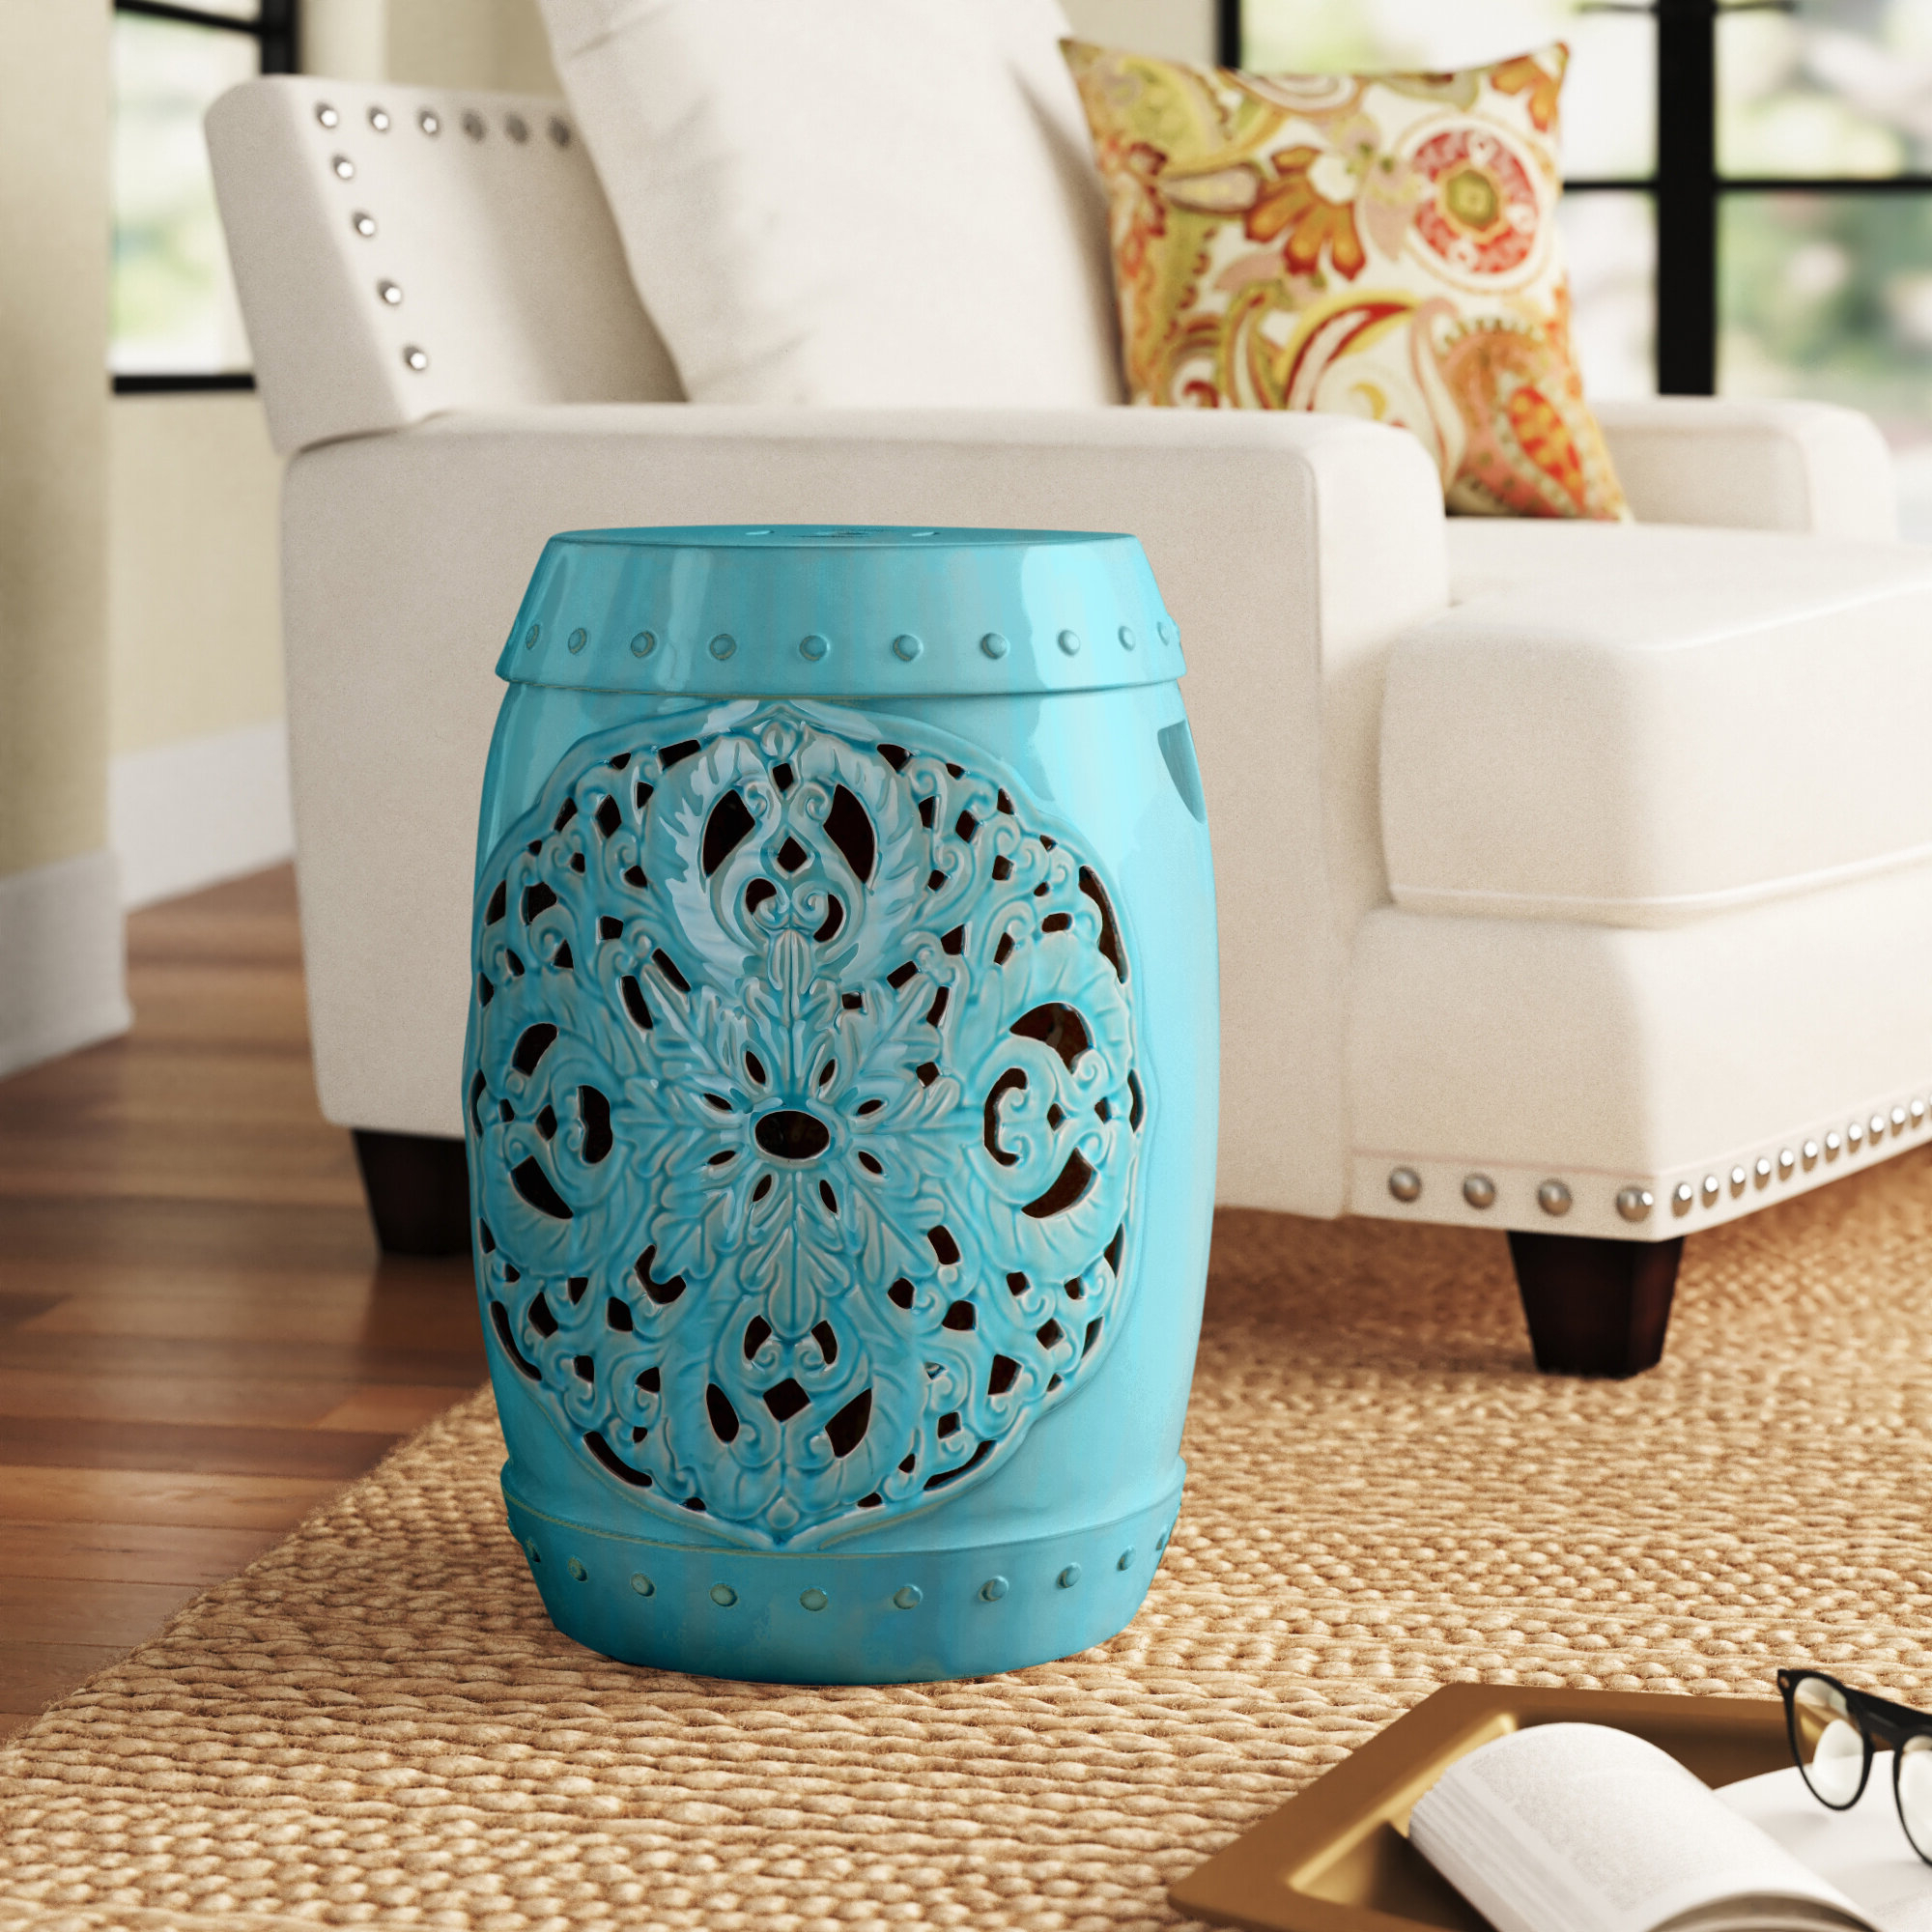 Nagle Ceramic Garden Stool Within Favorite Tillia Ceramic Garden Stools (View 20 of 30)